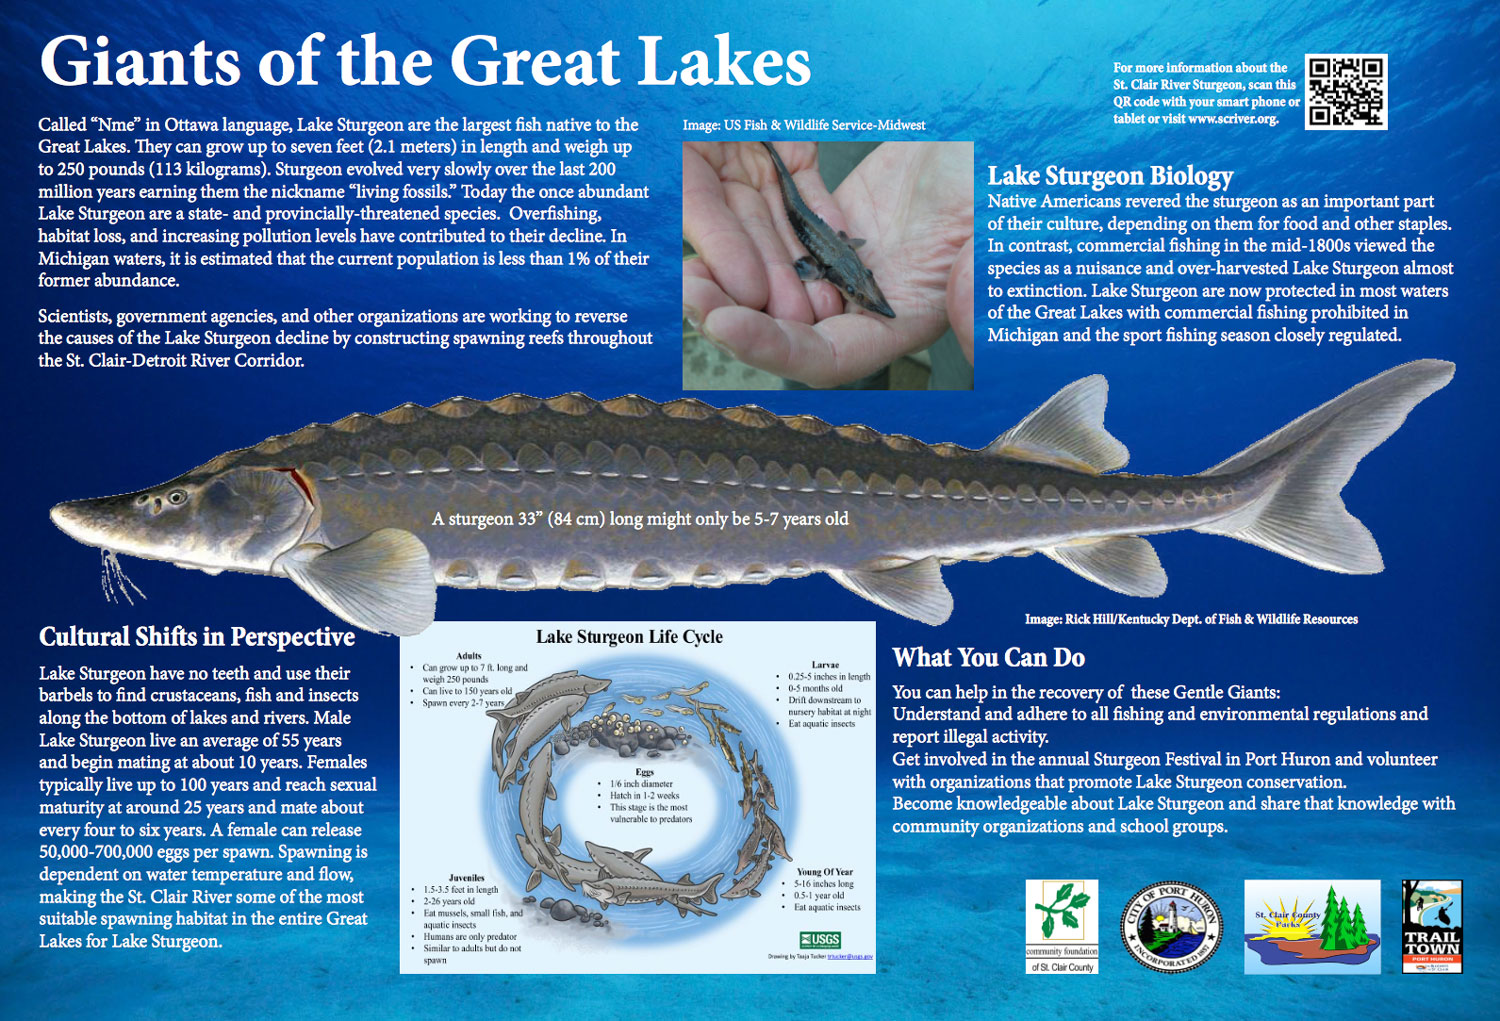 Giants-of-the-Great-Lakes